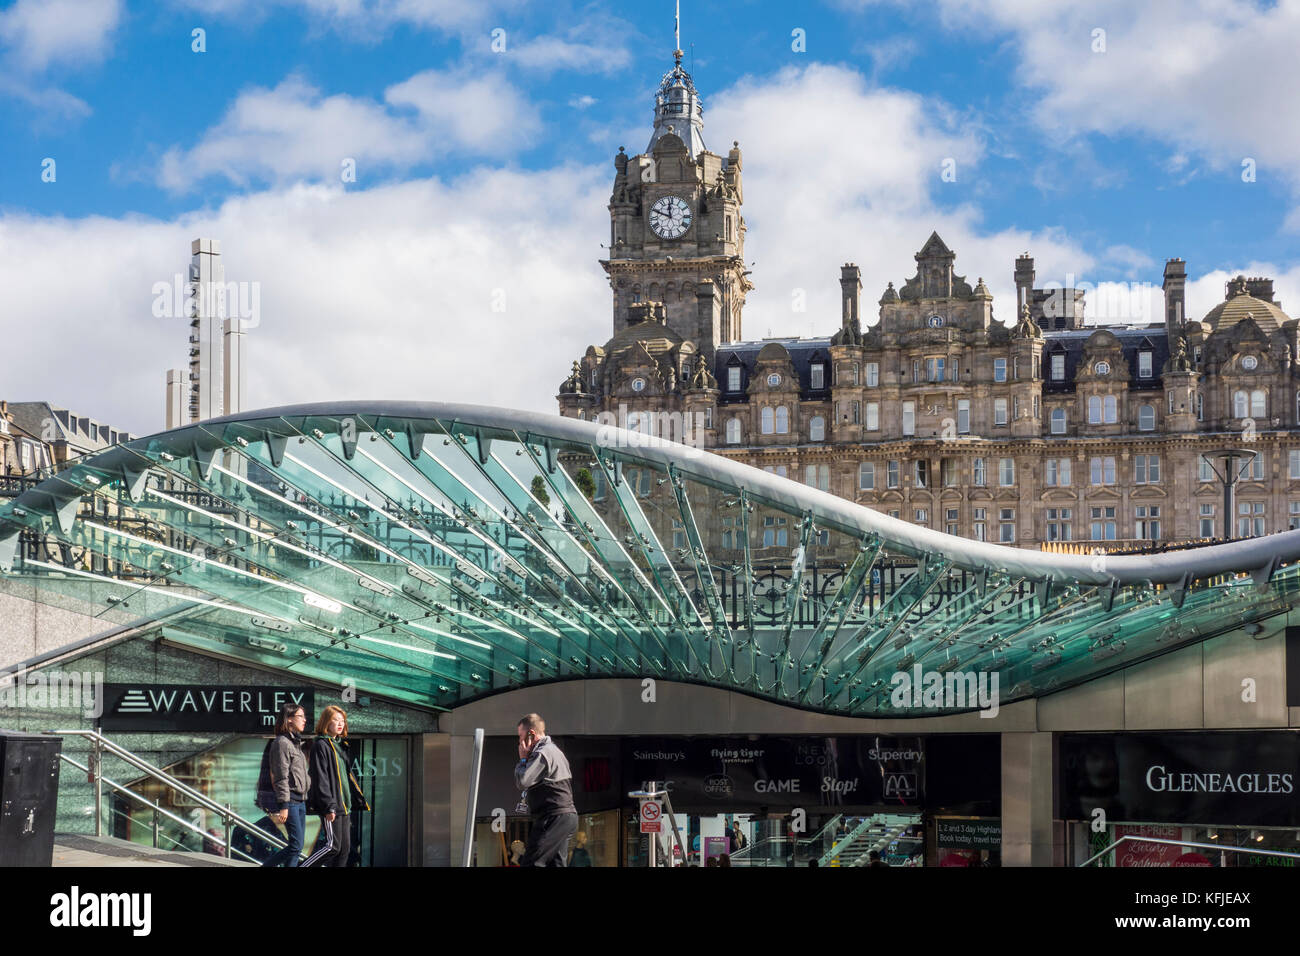 Entrance to Waverley Mall with The Balmoral Hotel in the background, Edinburgh, Scotland, UK - Stock Image